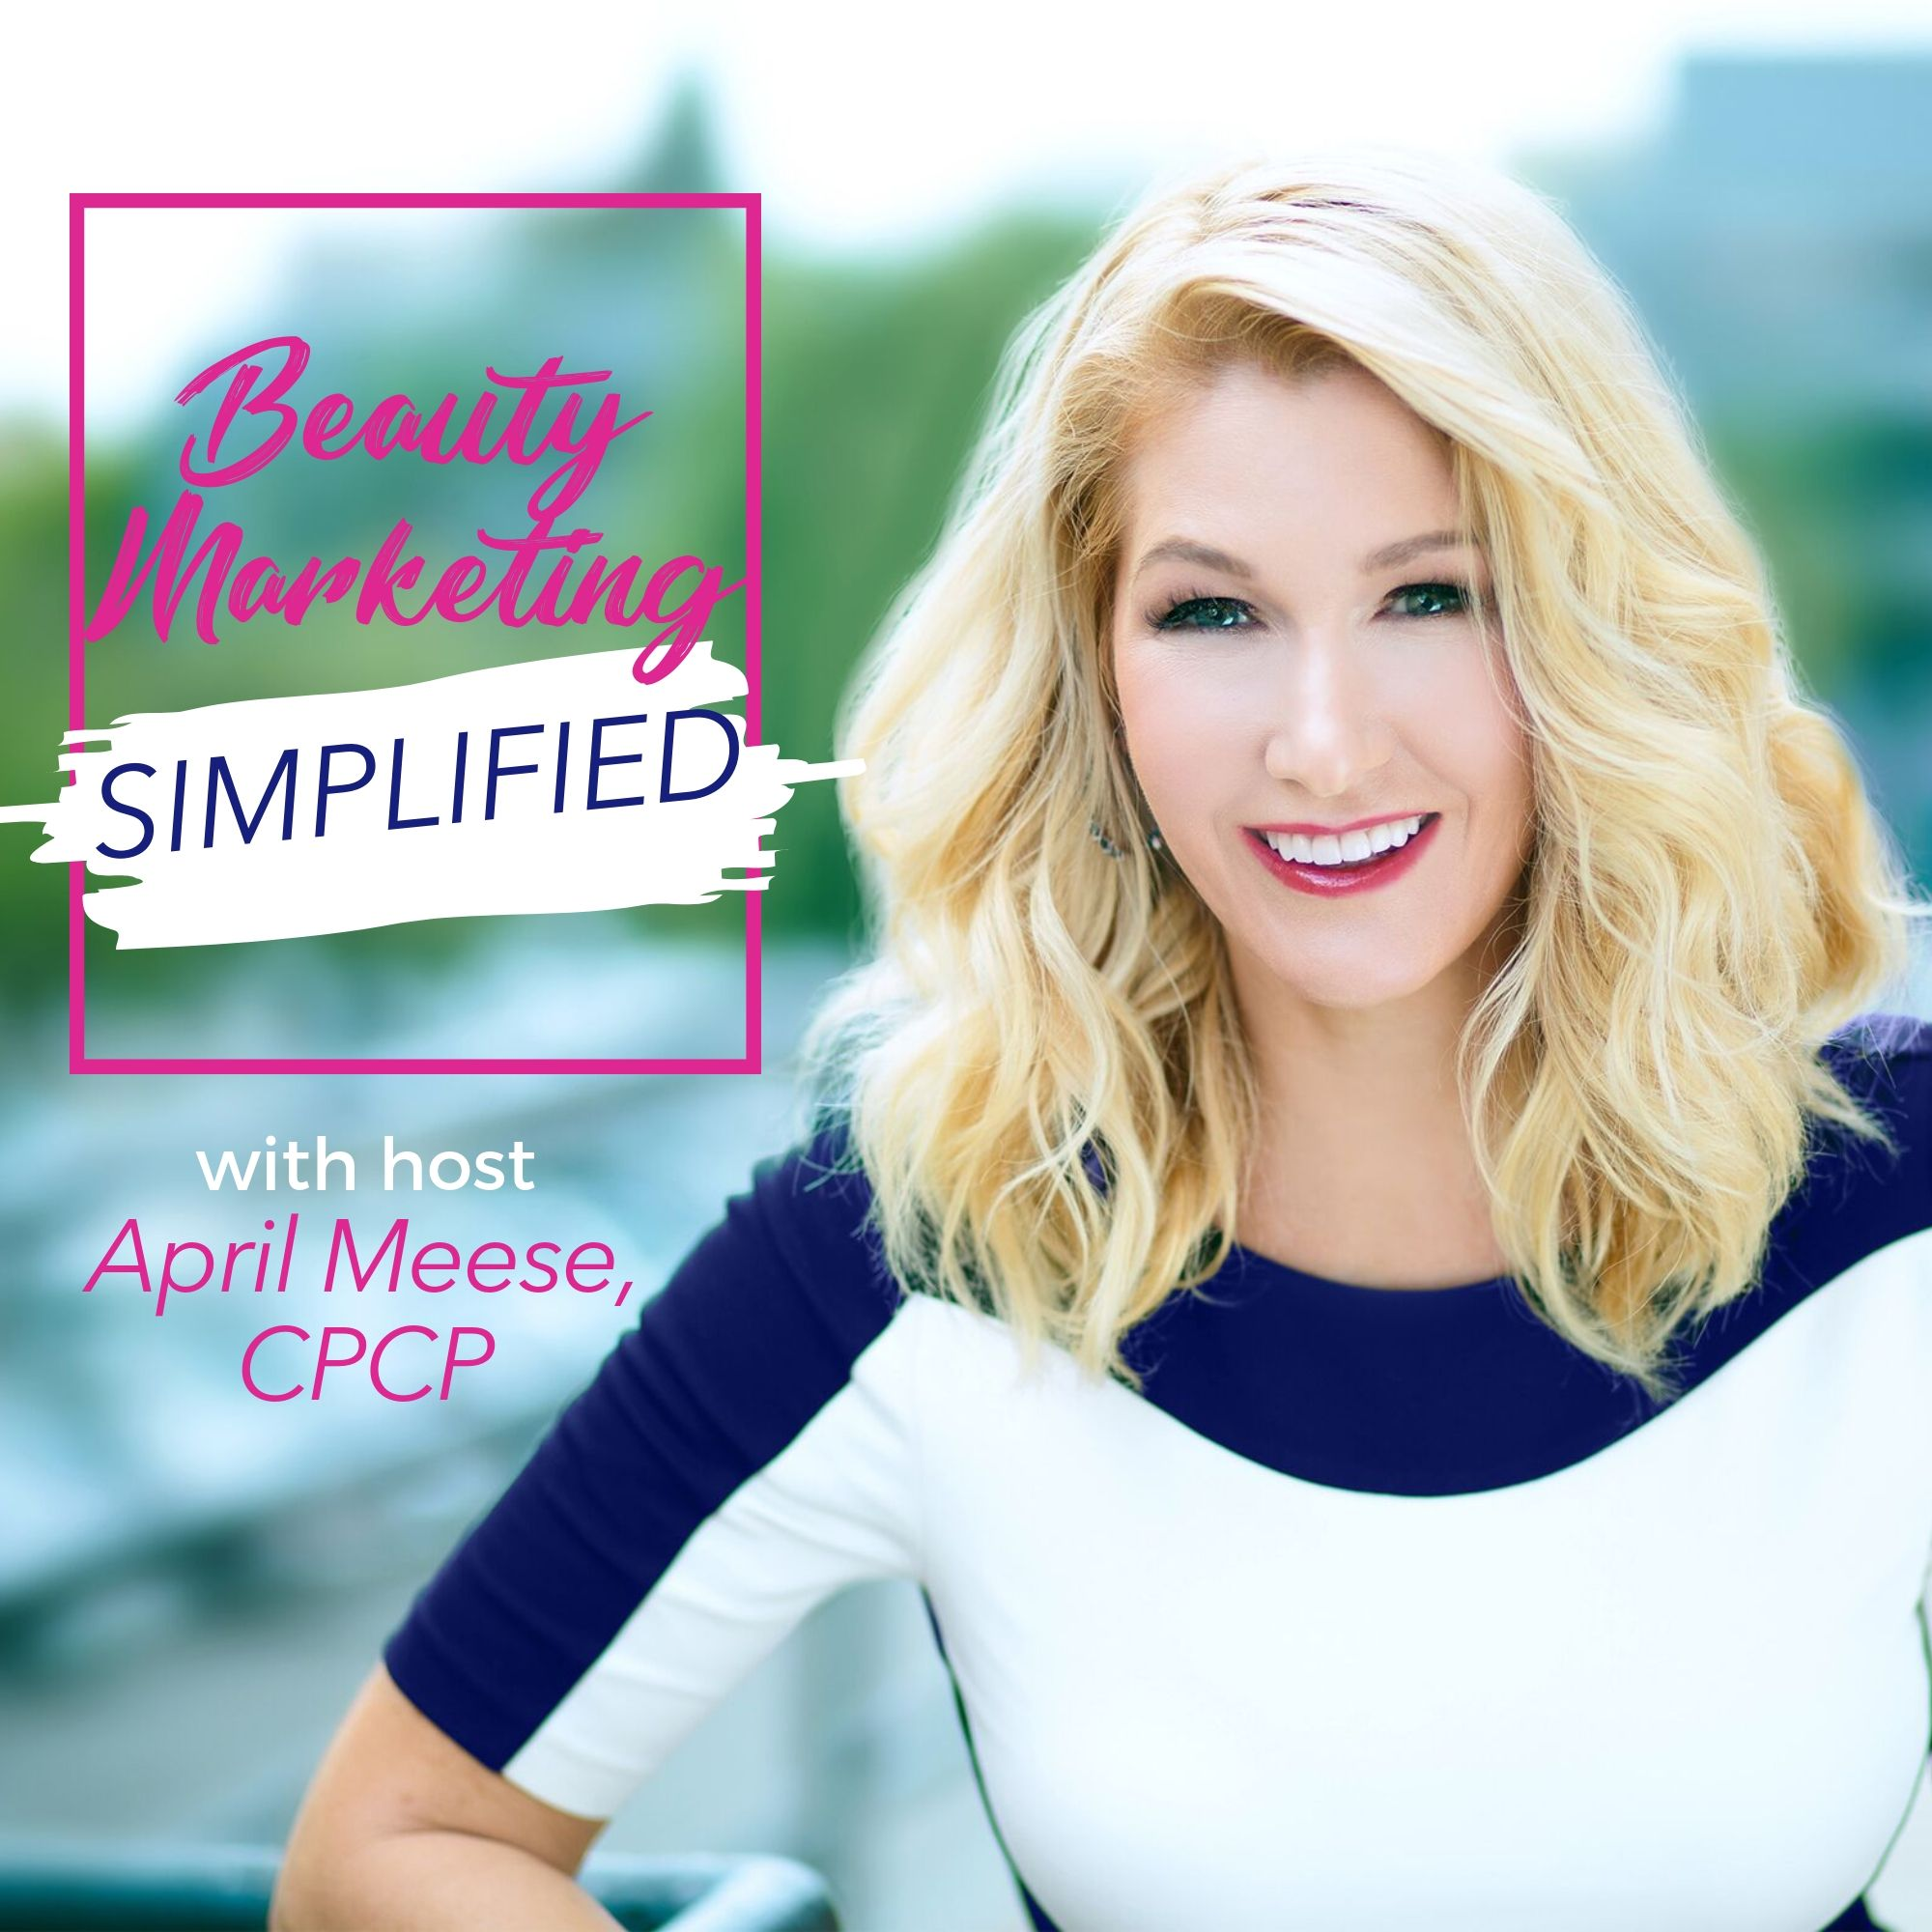 Episode 62 Will the new Clubhouse App Help your Beauty Business?